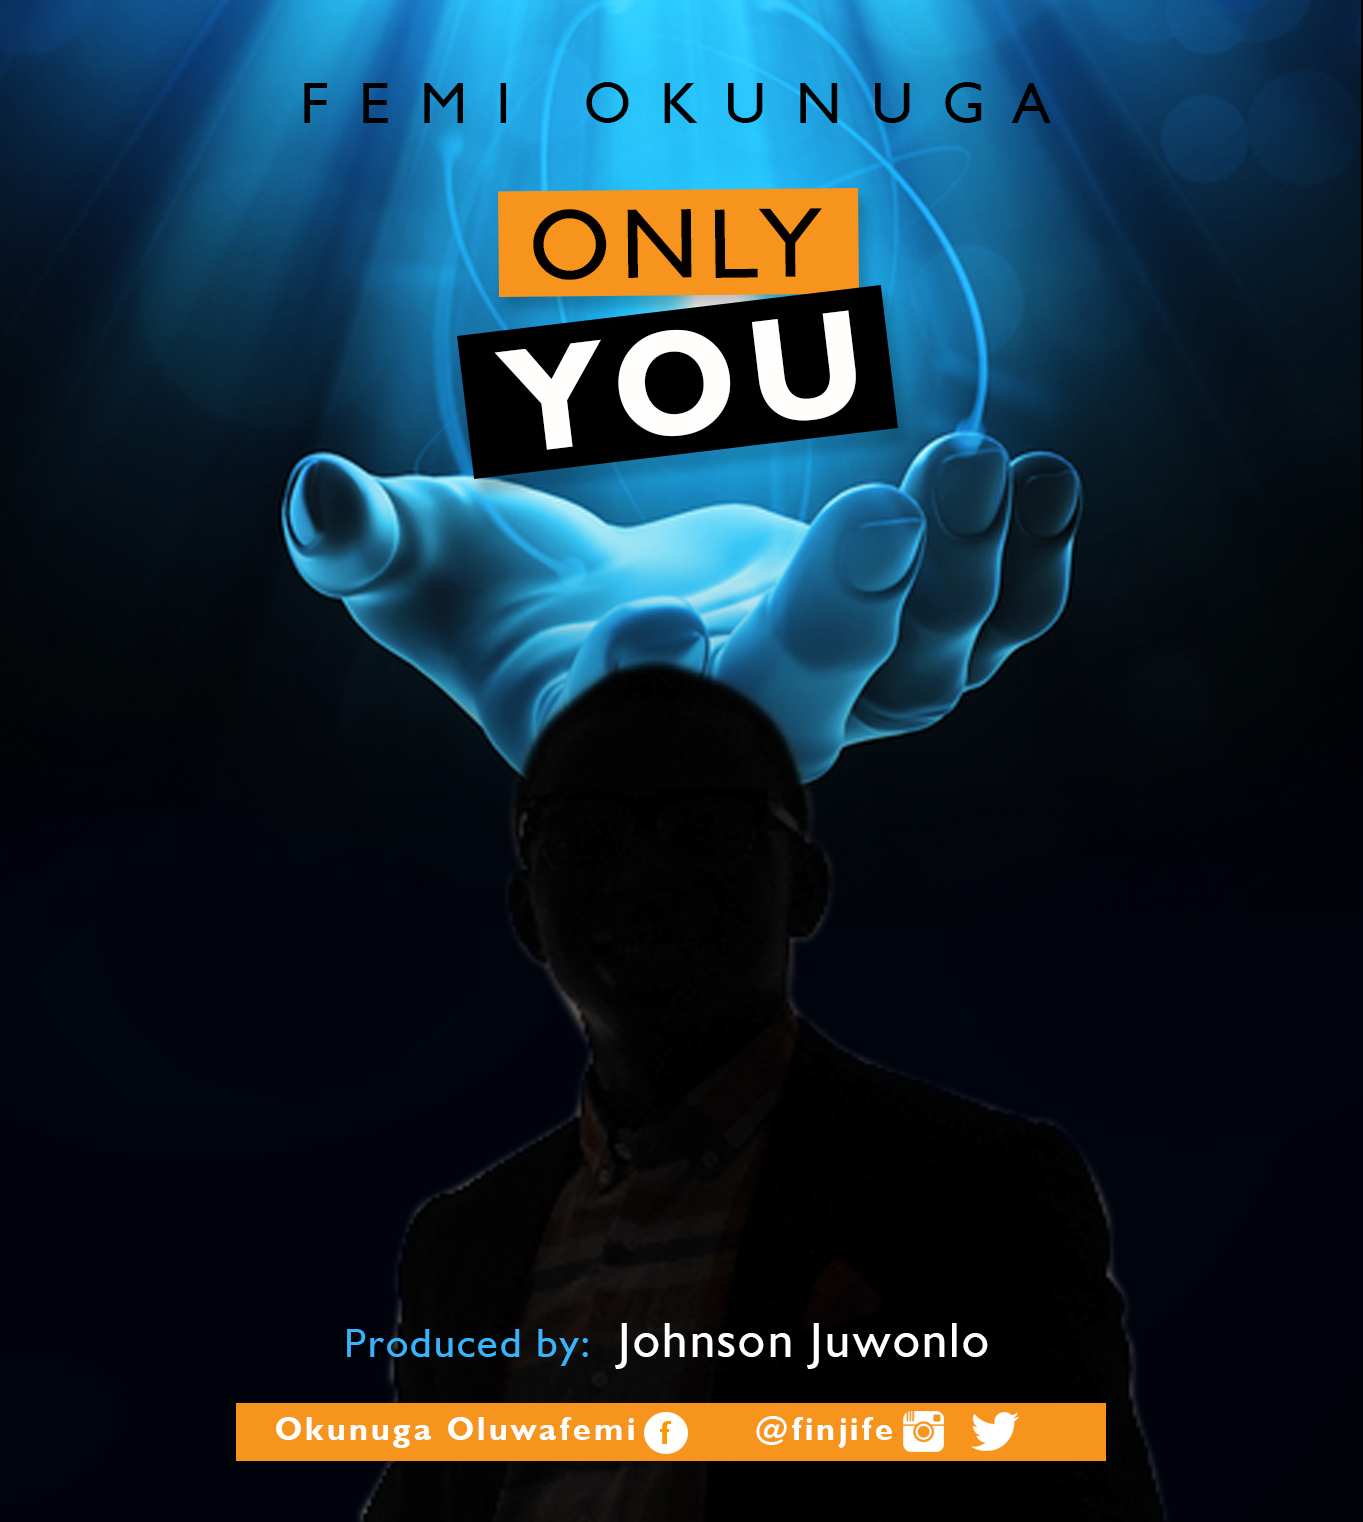 only you - femi okunuga (choirzone.com)